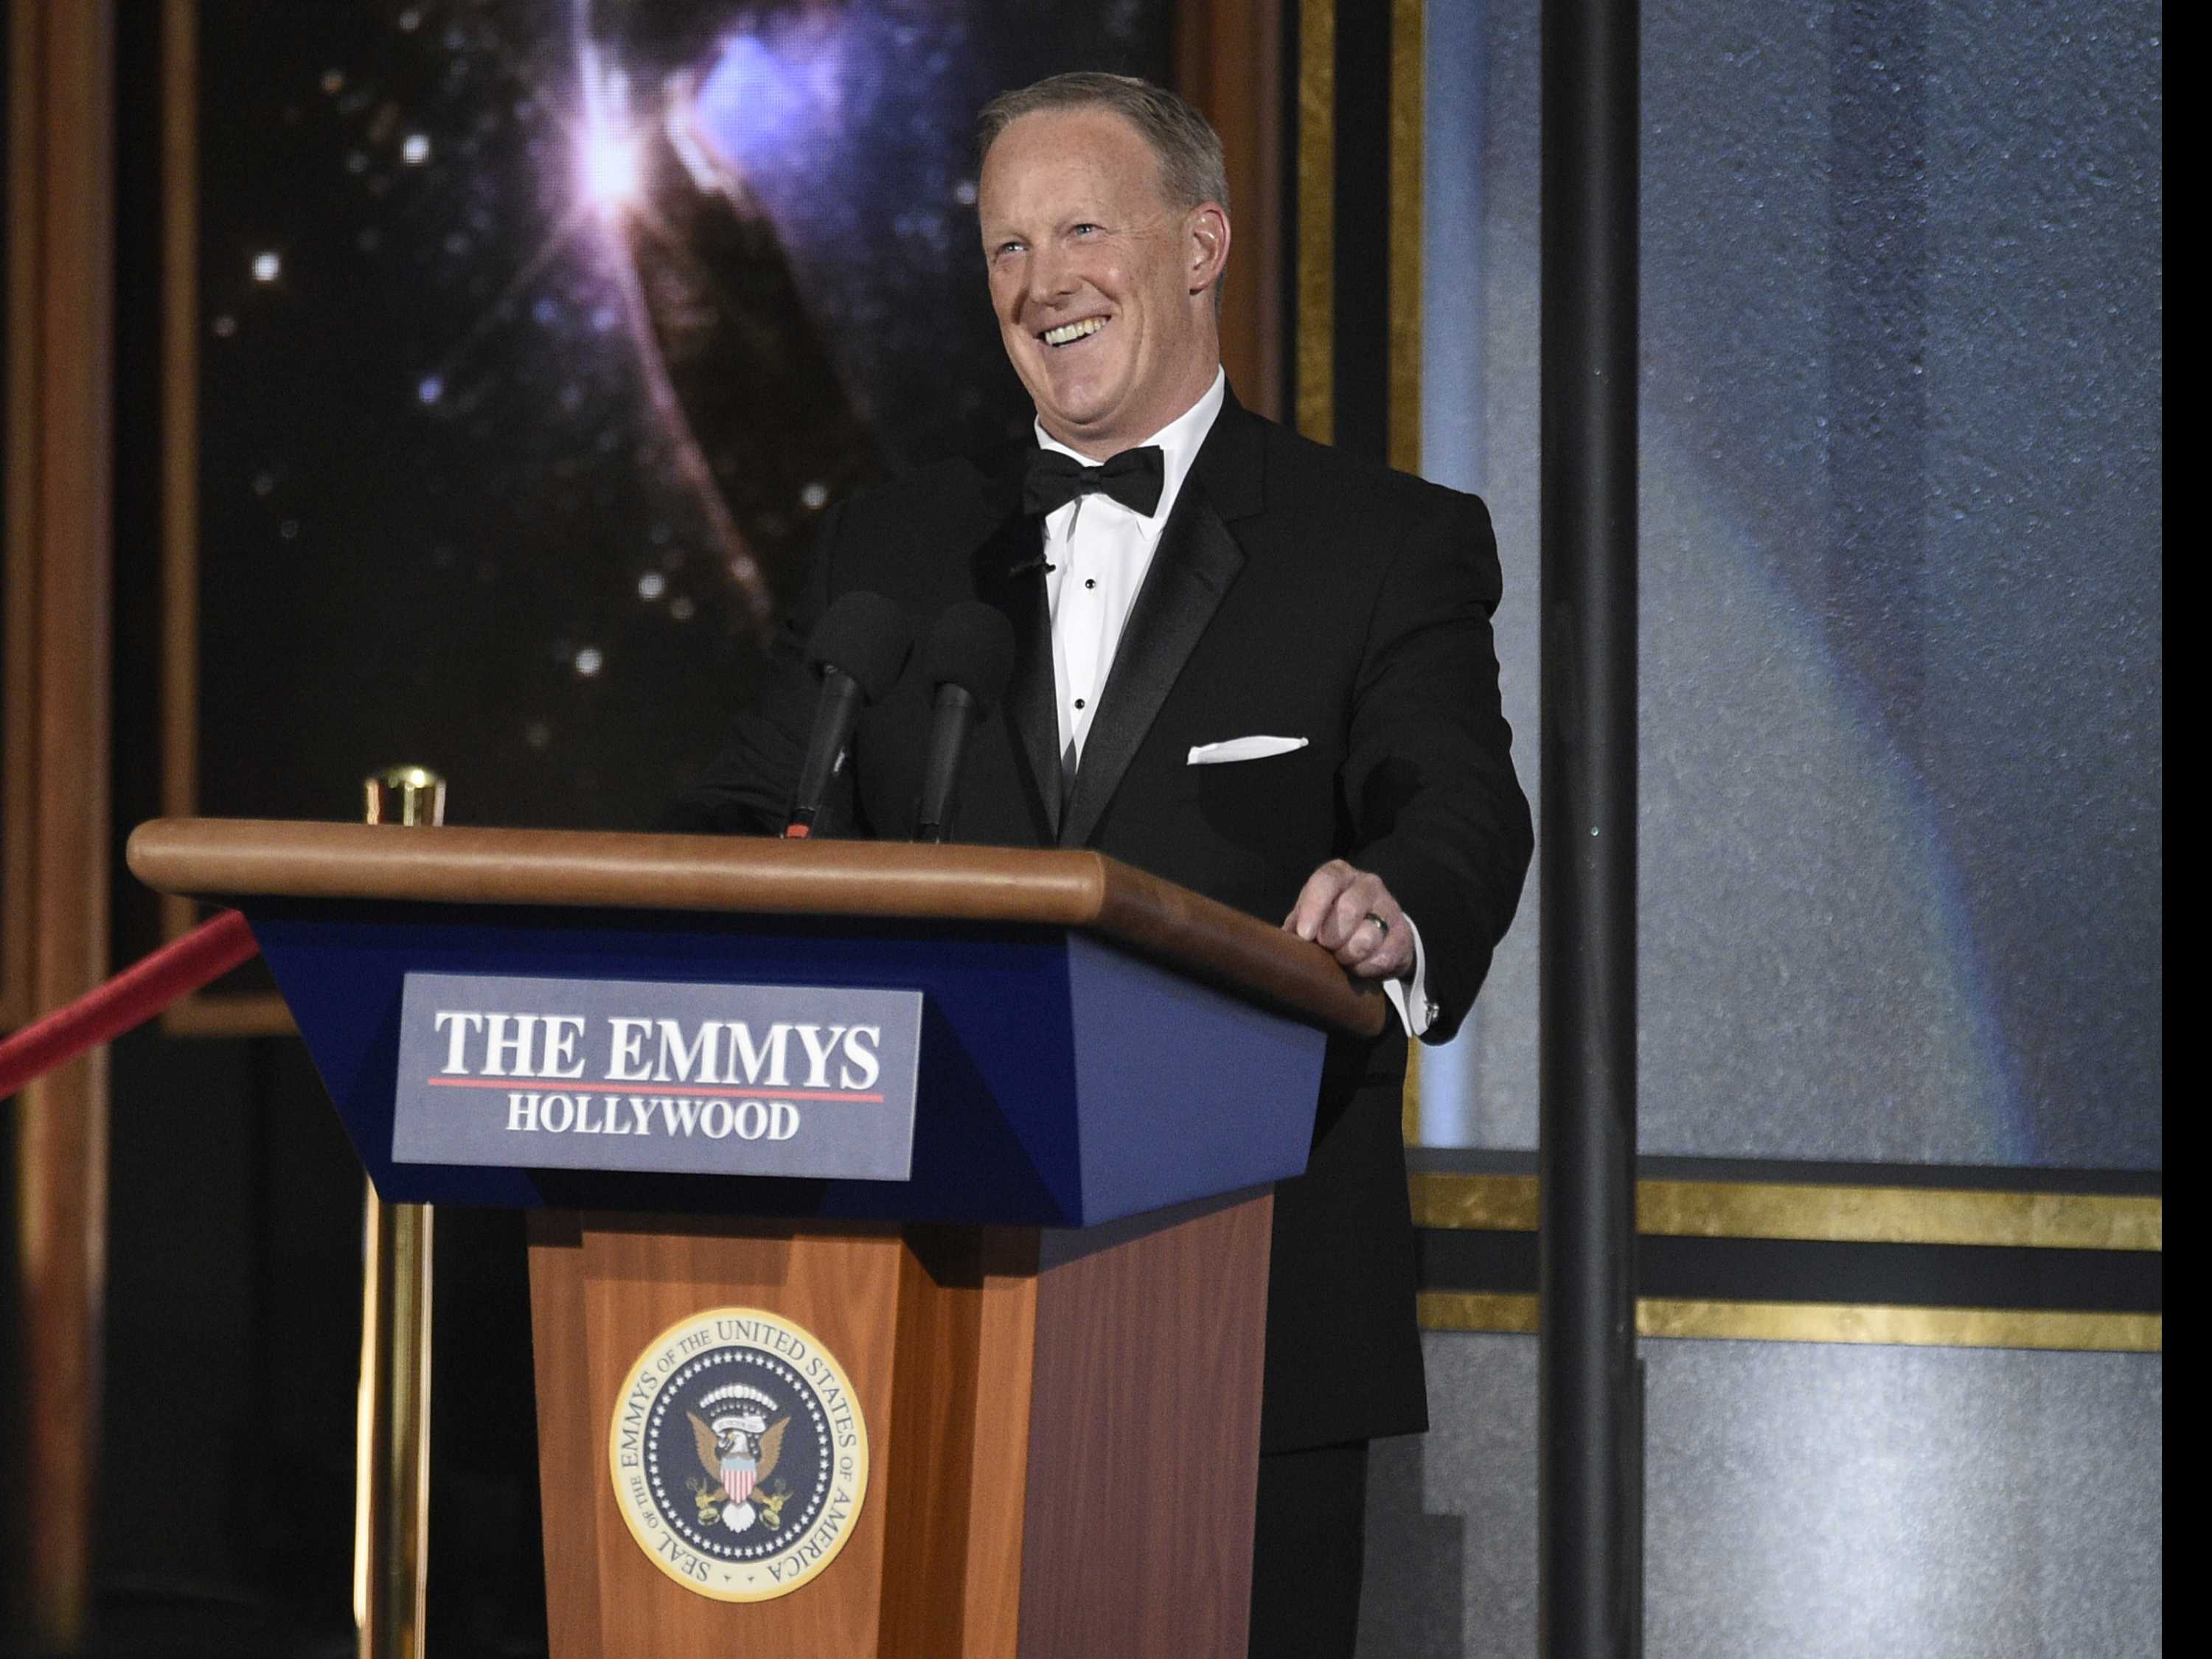 Spicer Suggests Critics of Emmy Appearance Should Lighten Up